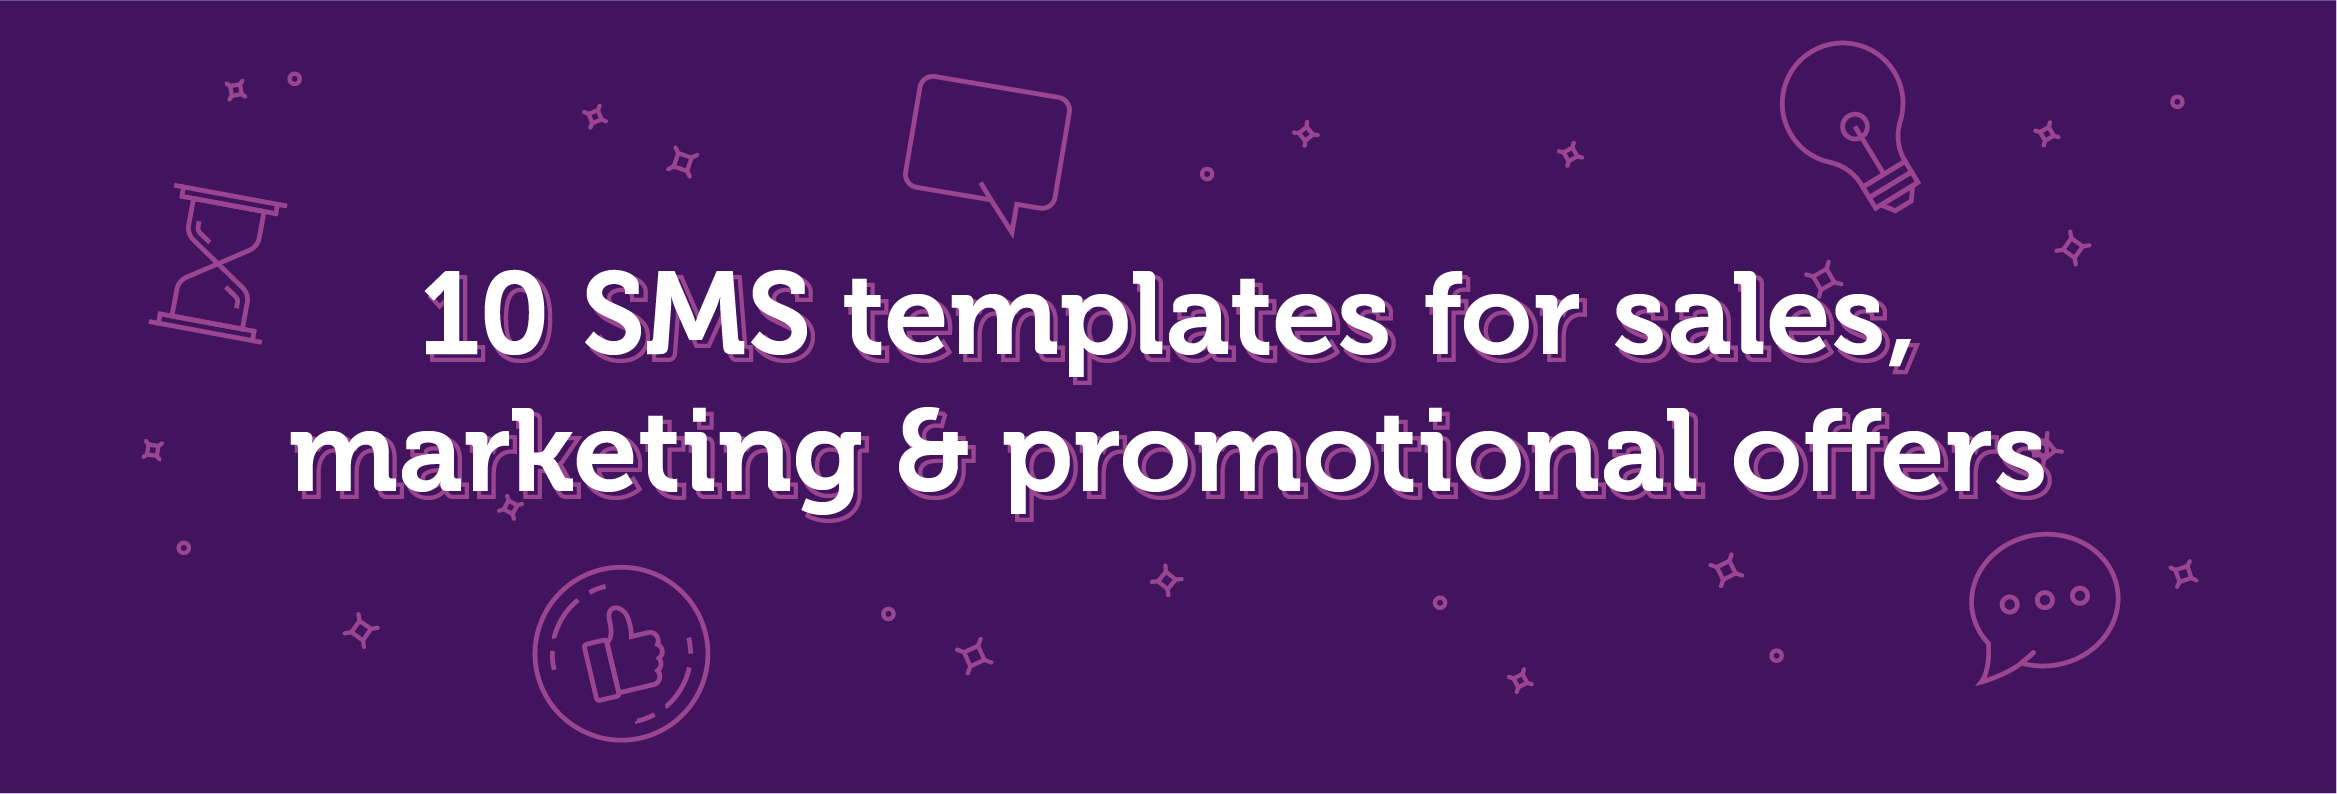 10 sms templates for sales, marketing and promotional offers